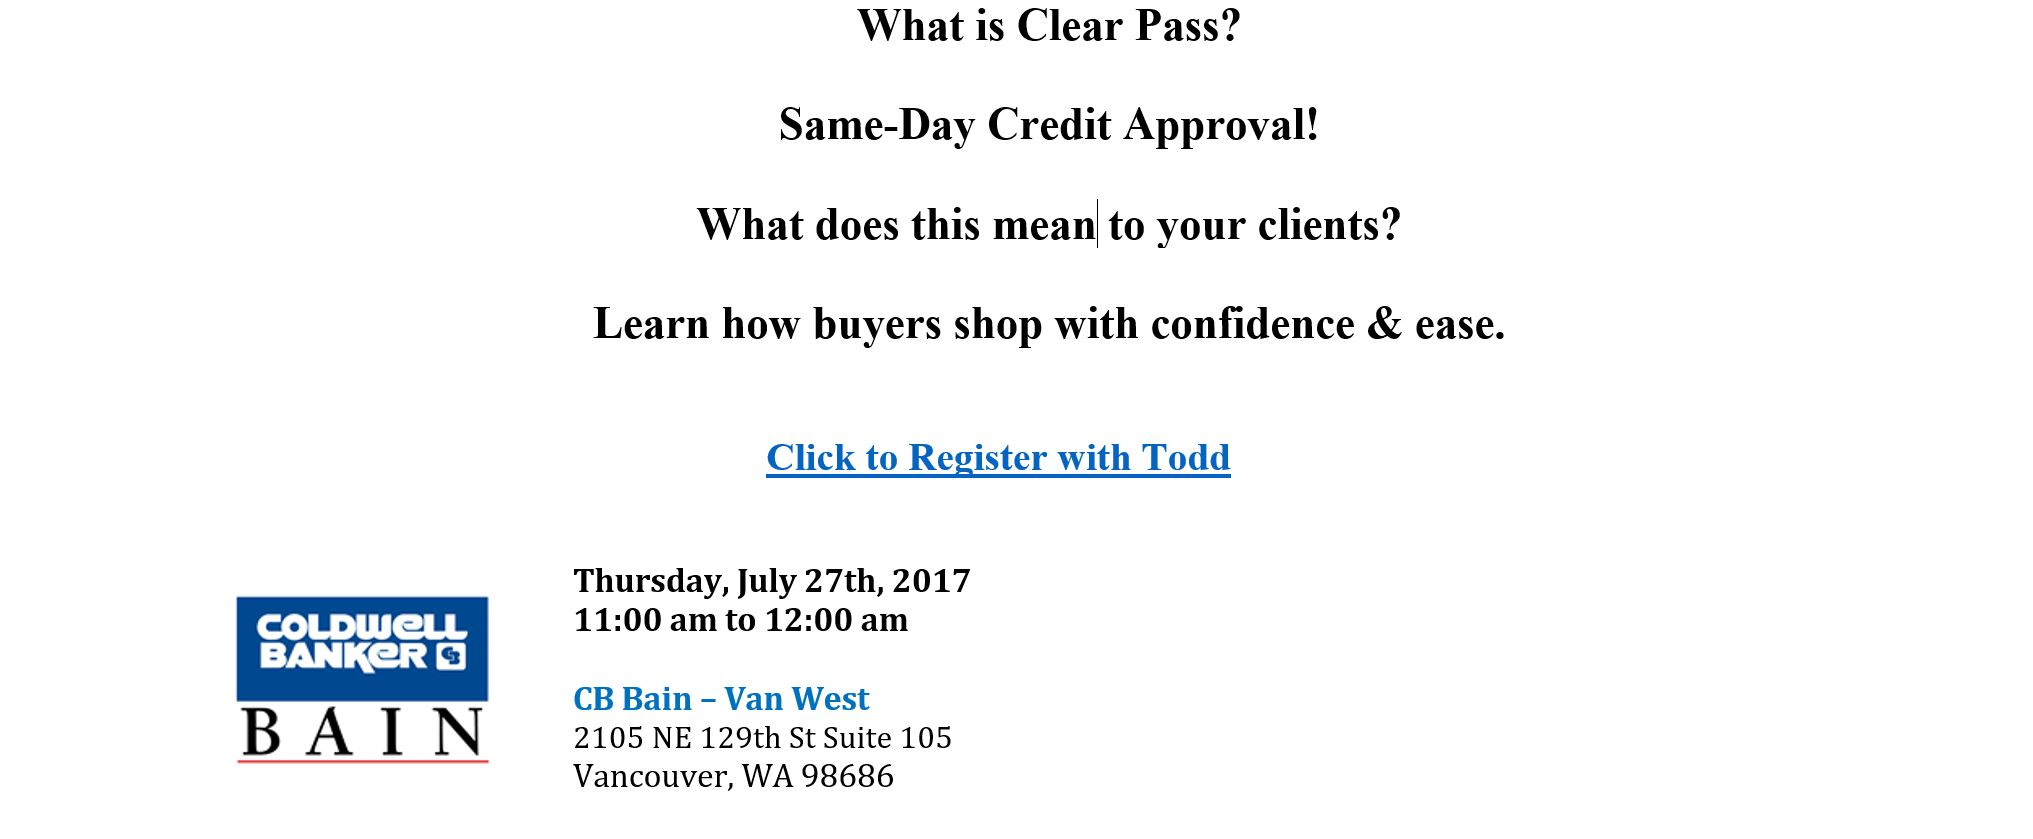 ClearPass_VanWest_July_27th